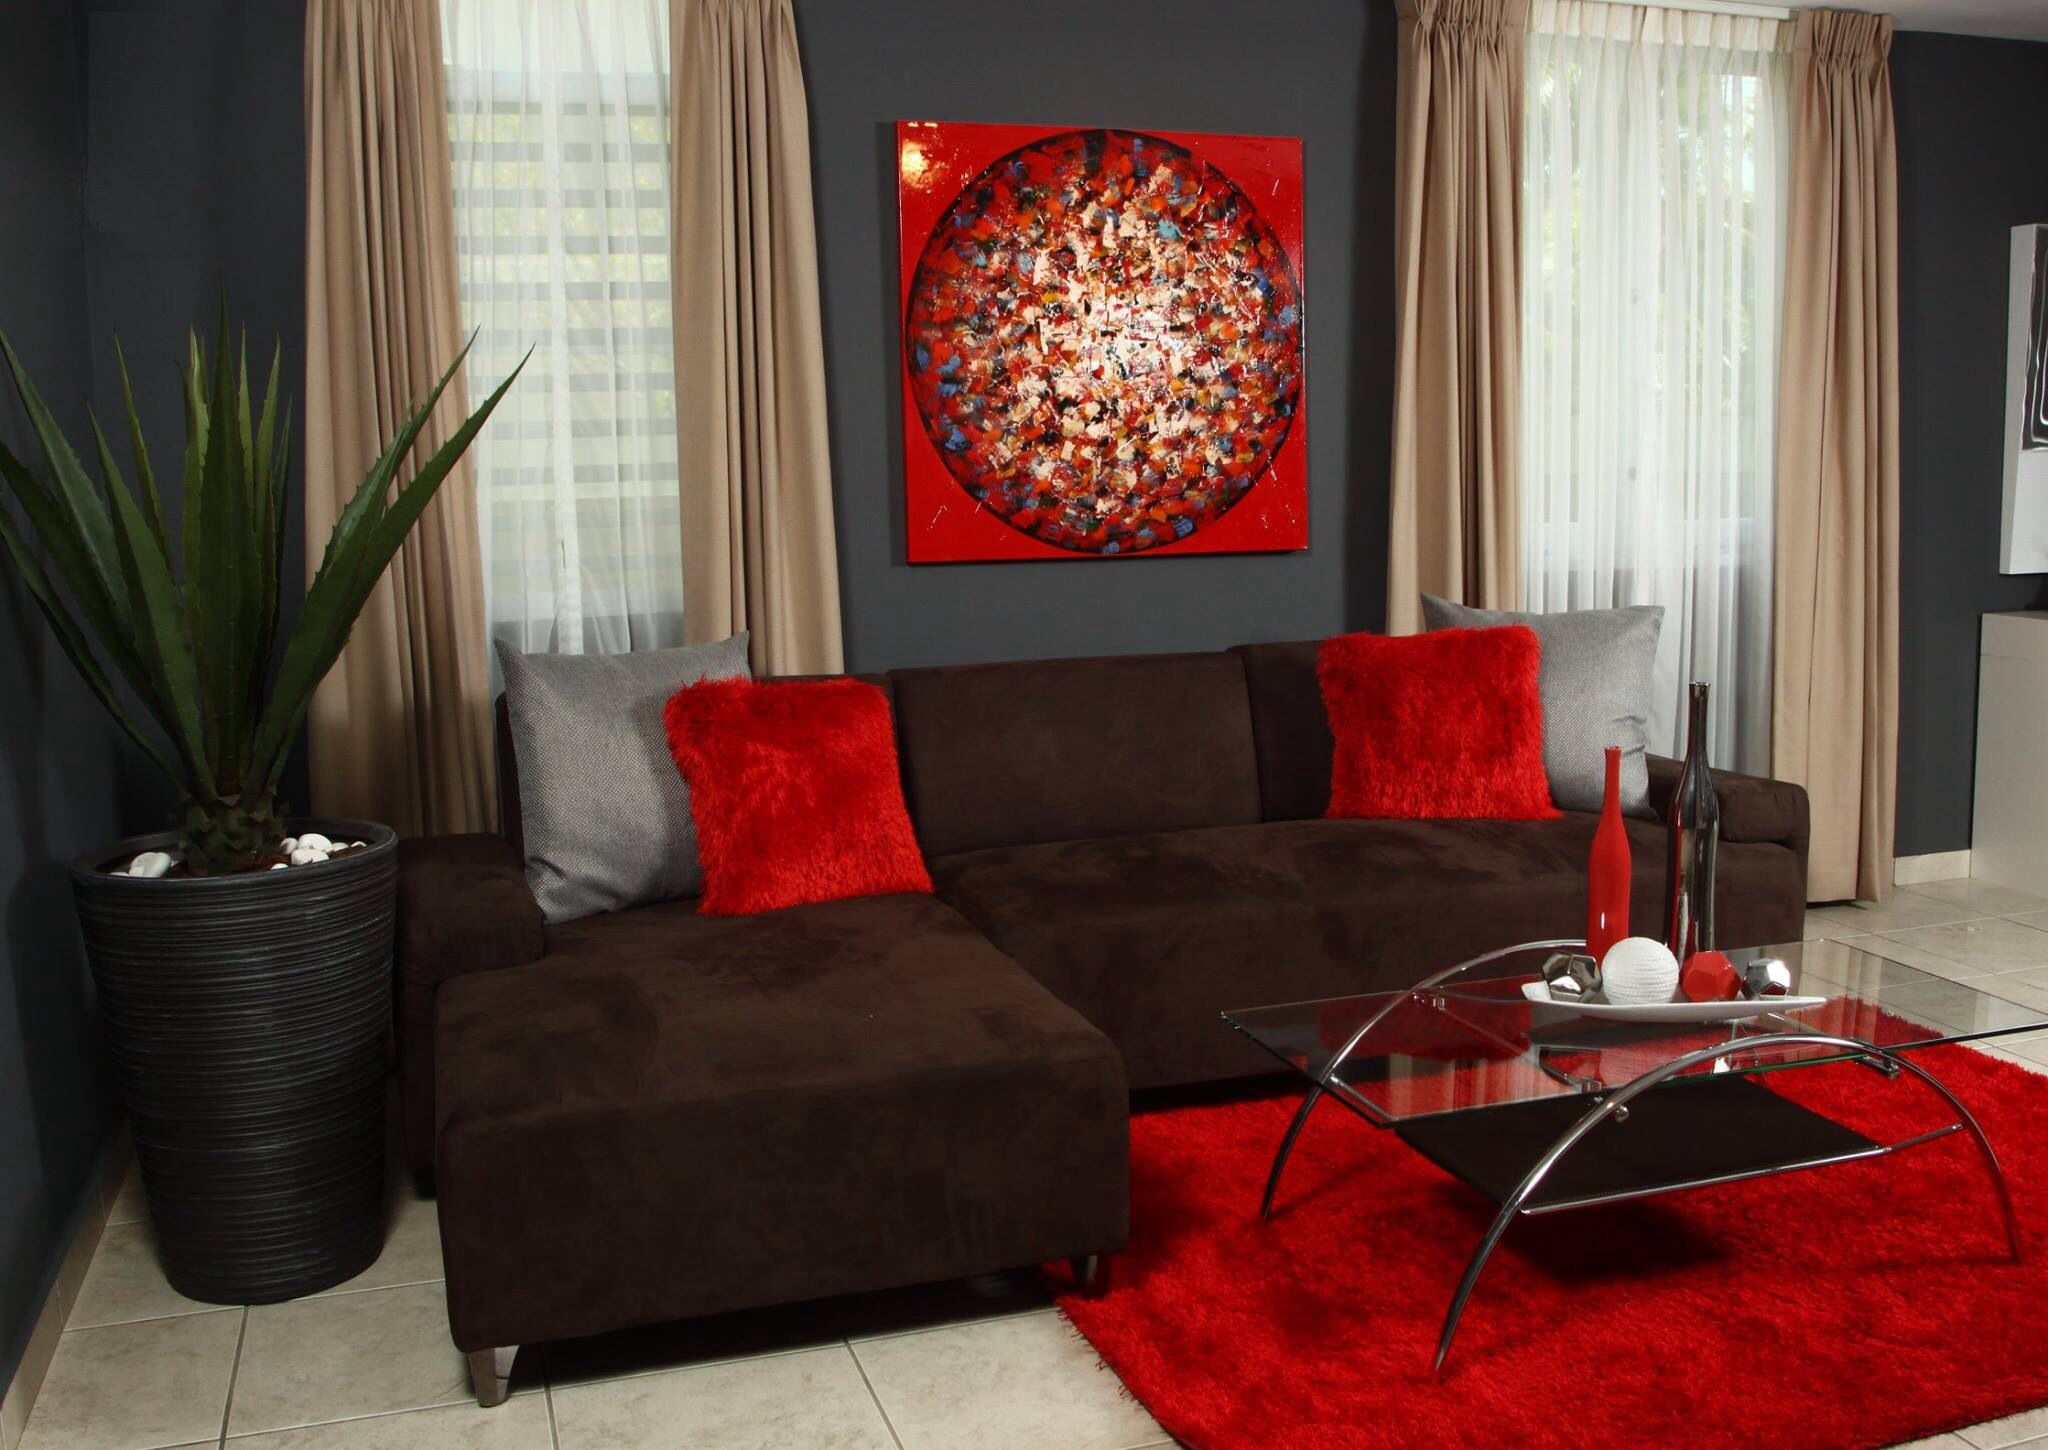 Red Decoration For Living Room Love It Https Www Facebook Com Shorthaircutstyles Posts 1760 Brown Living Room Decor Red Living Room Decor Black Living Room